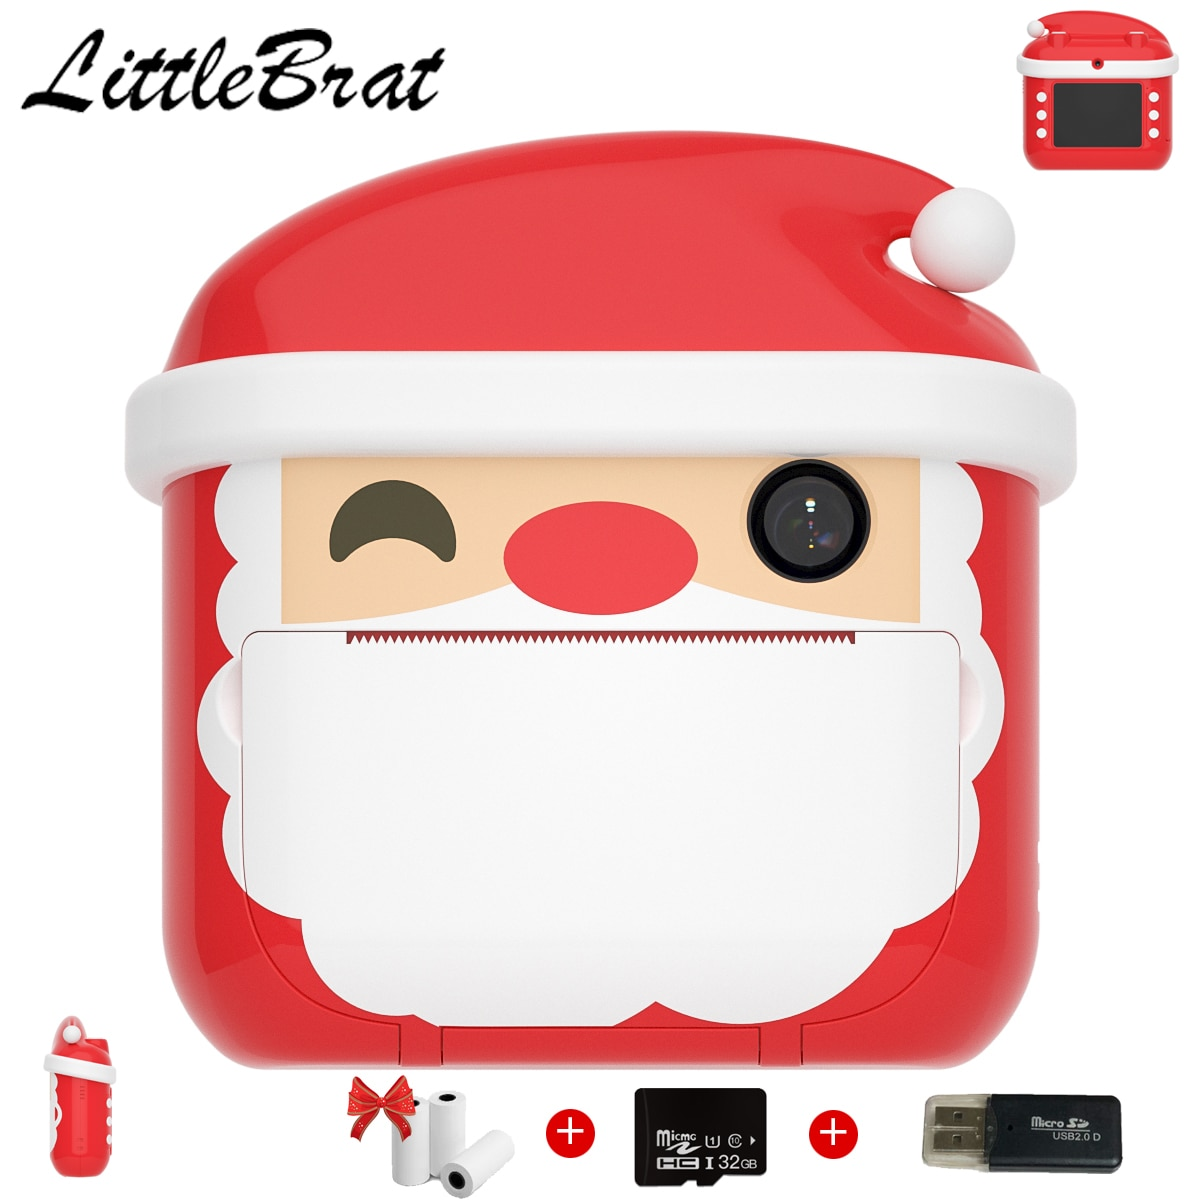 Children's Camera With Print Instant Print Photos Camera Kids Toys Boy Girl Cute Christmas Gift 1080P Video Digital Camera enlarge